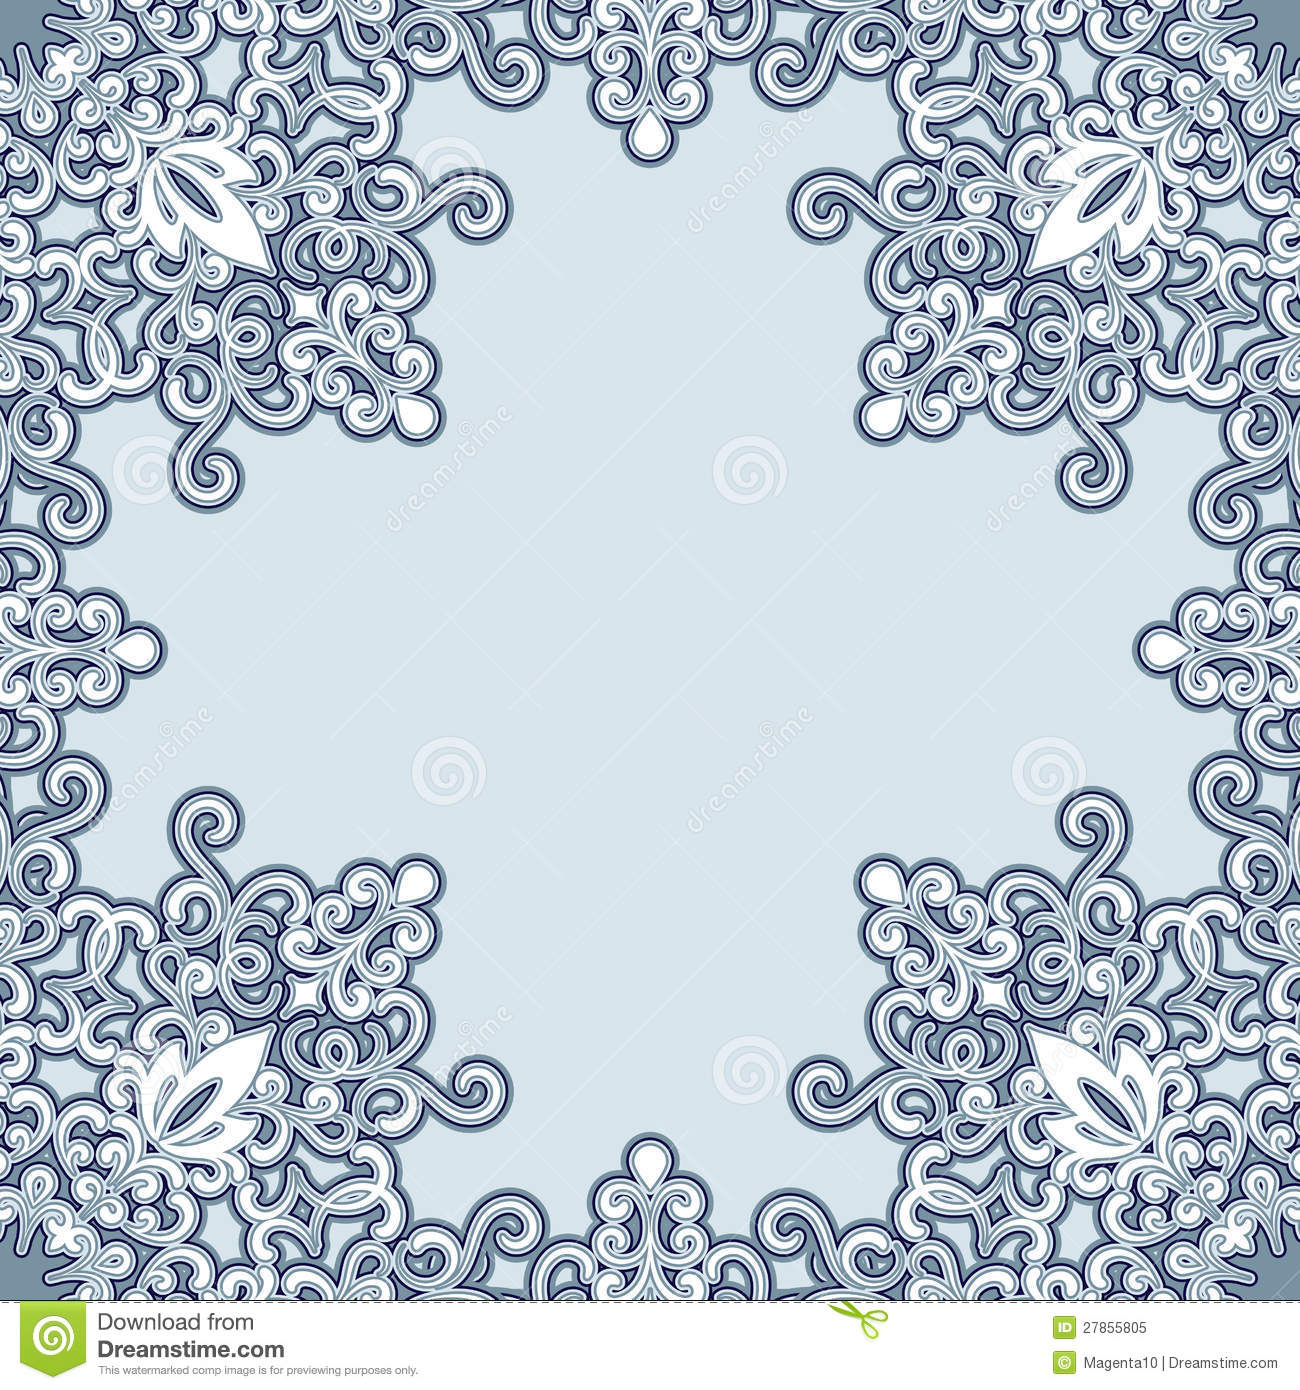 Free swirly frames submited images pic2fly male models for Professional window treatment patterns